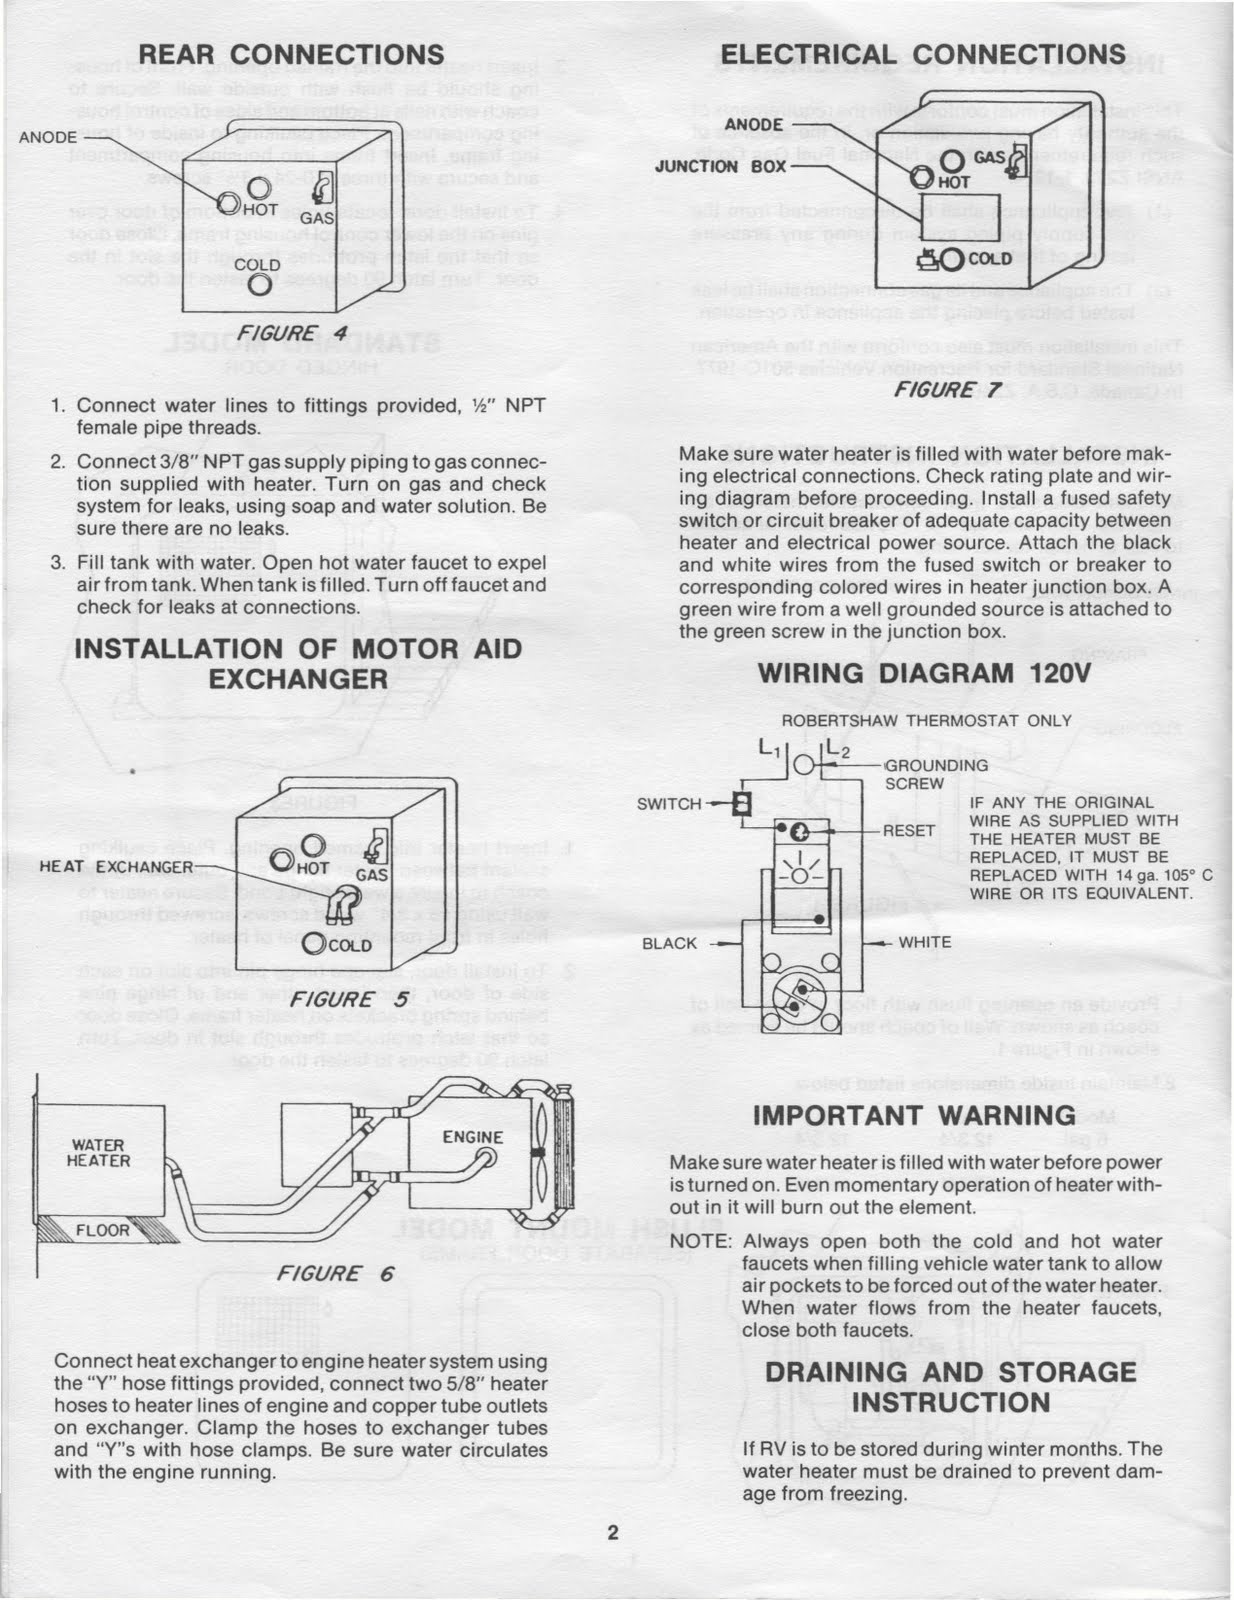 hight resolution of 1848 wiring diagram for 79 dodge motorhome 1976 dodge motorhome rh diagram stockimages us